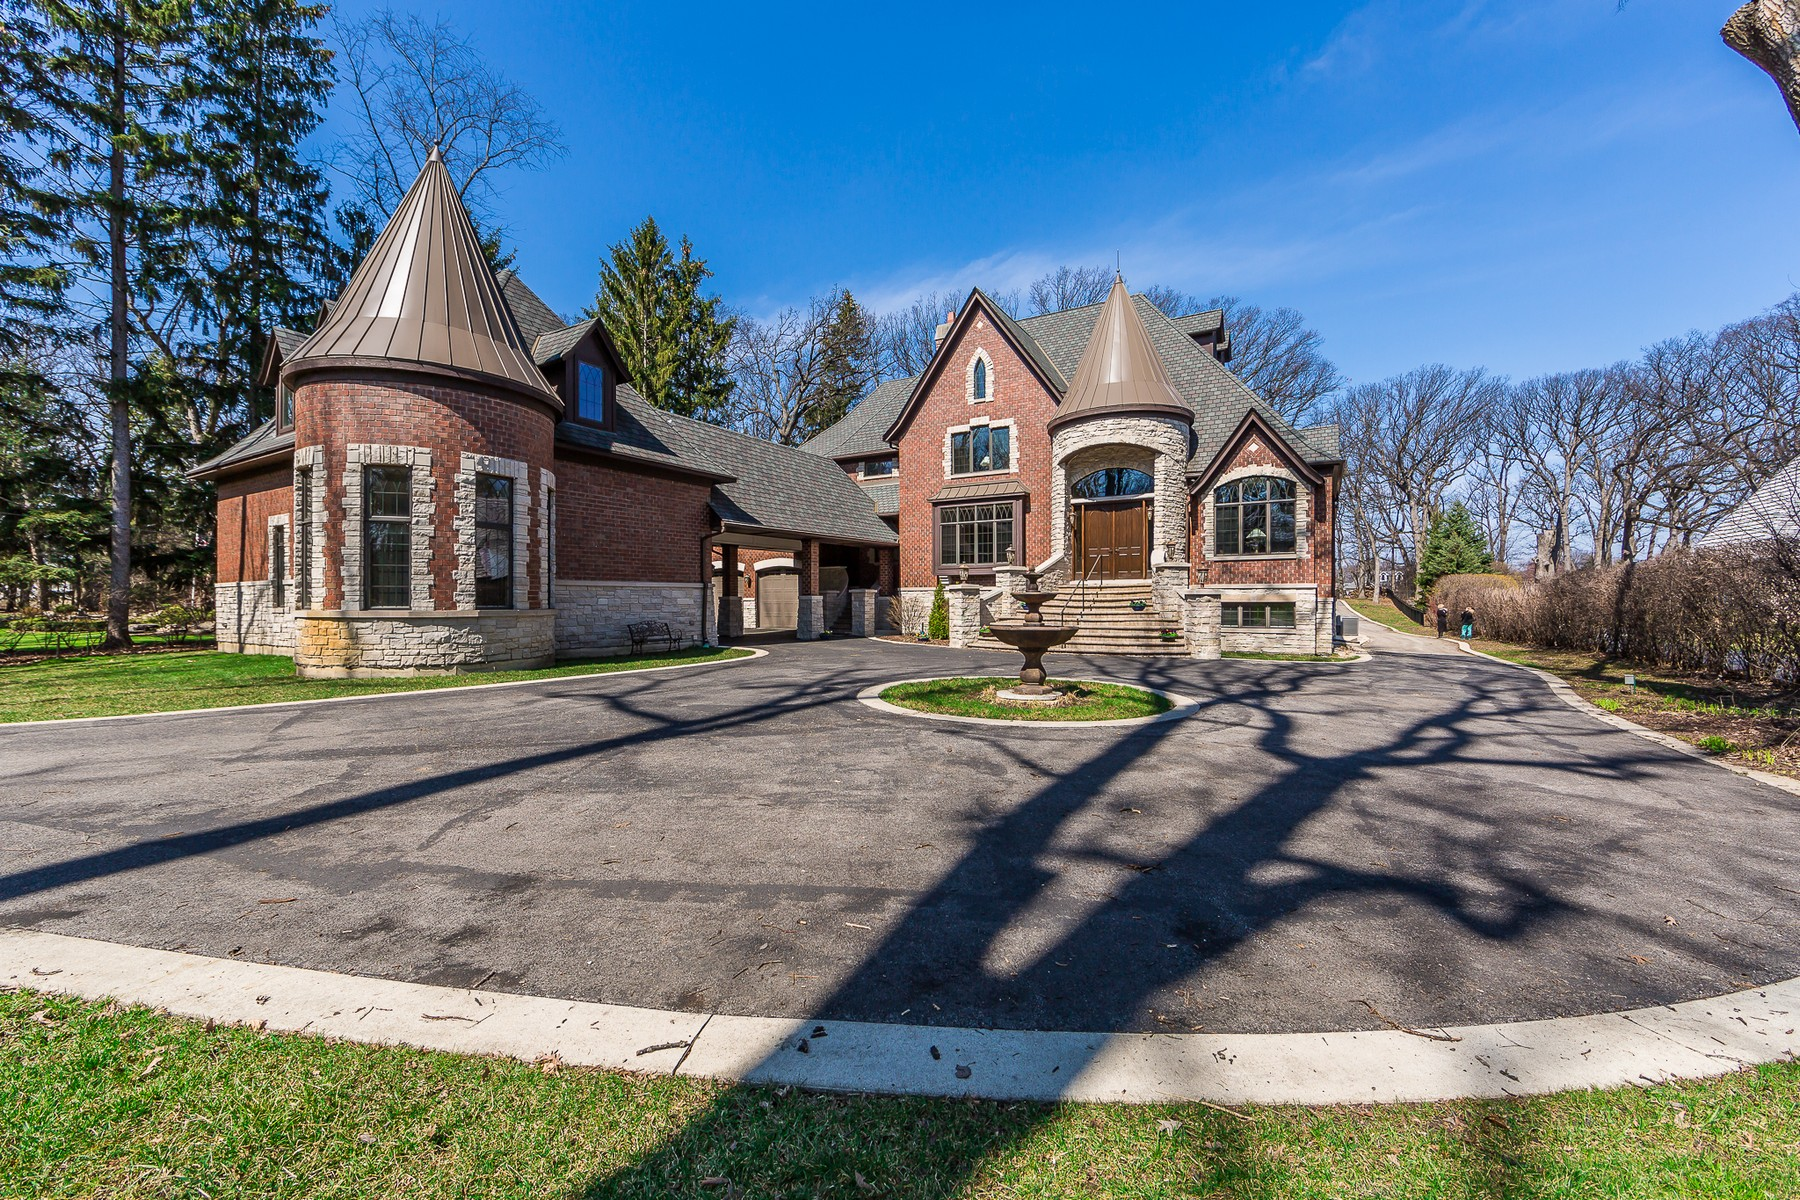 Single Family Home for Sale at 3108 White Oak Ln 3108 White Oak Lane, Oak Brook, Illinois, 60523 United States